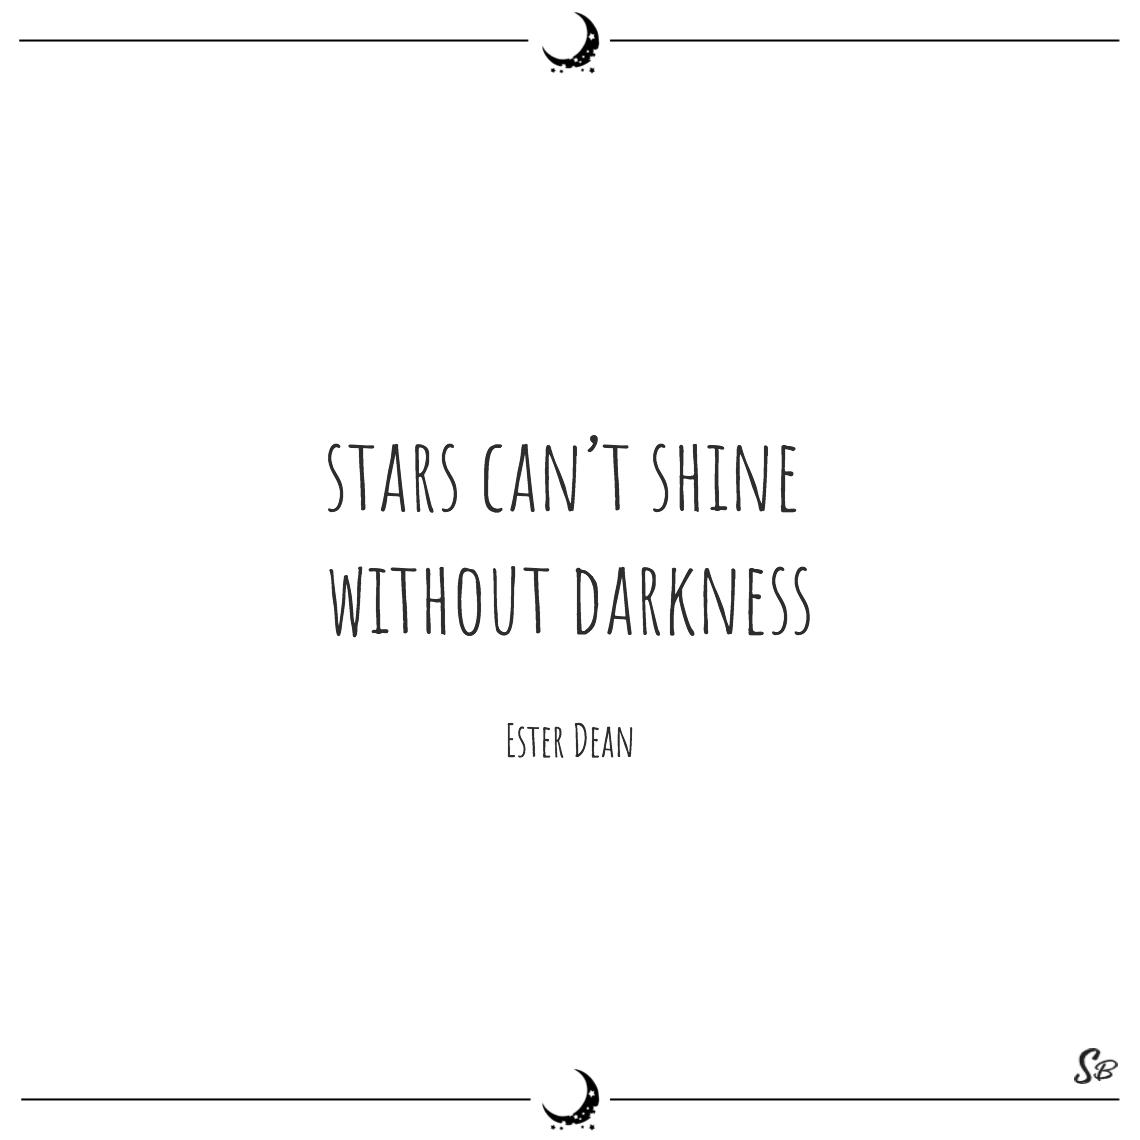 Stars can't shine without darkness ester dean